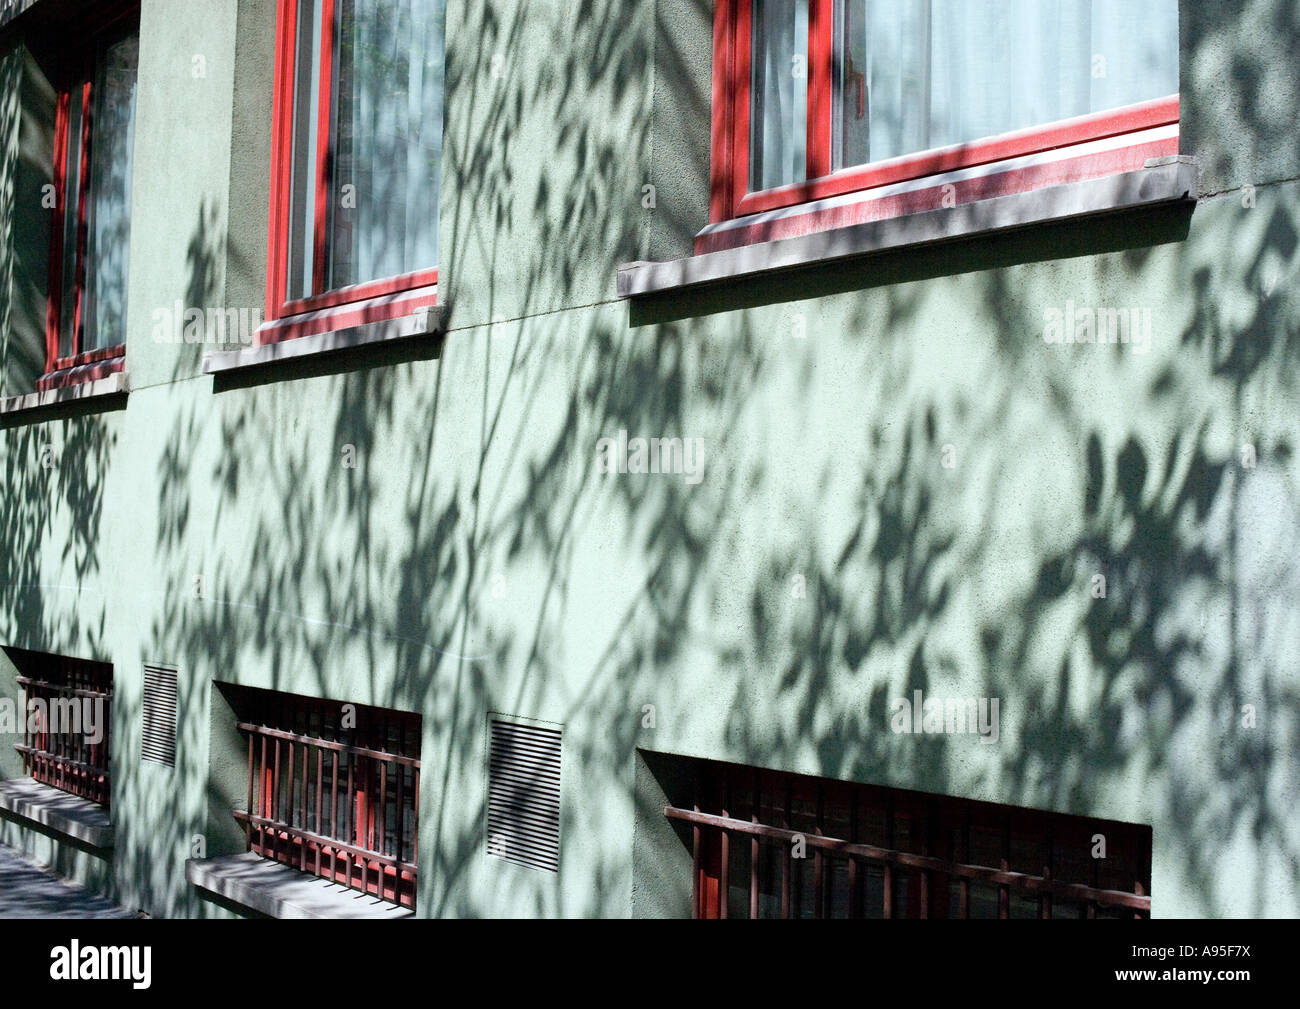 Apartment building with shadows of vegetation on facade, close-up - Stock Image